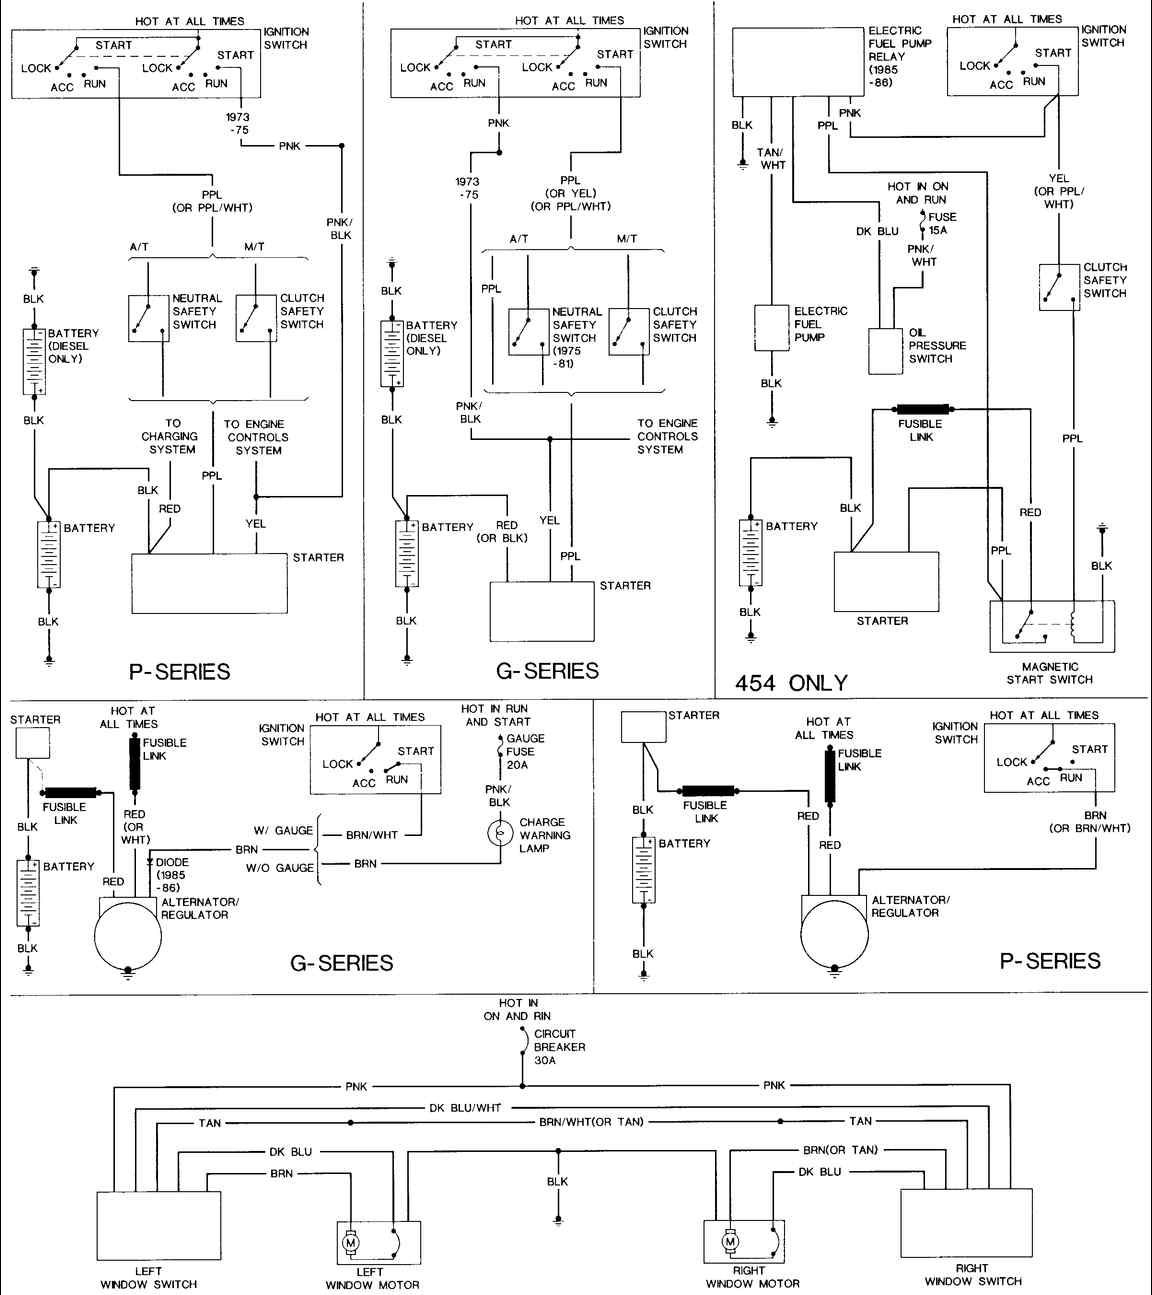 0c73623a181dc376dbb4777e2029d285 85 chevy truck wiring diagram 85 chevy van the steering column 1954 chevy truck wiring diagram at n-0.co